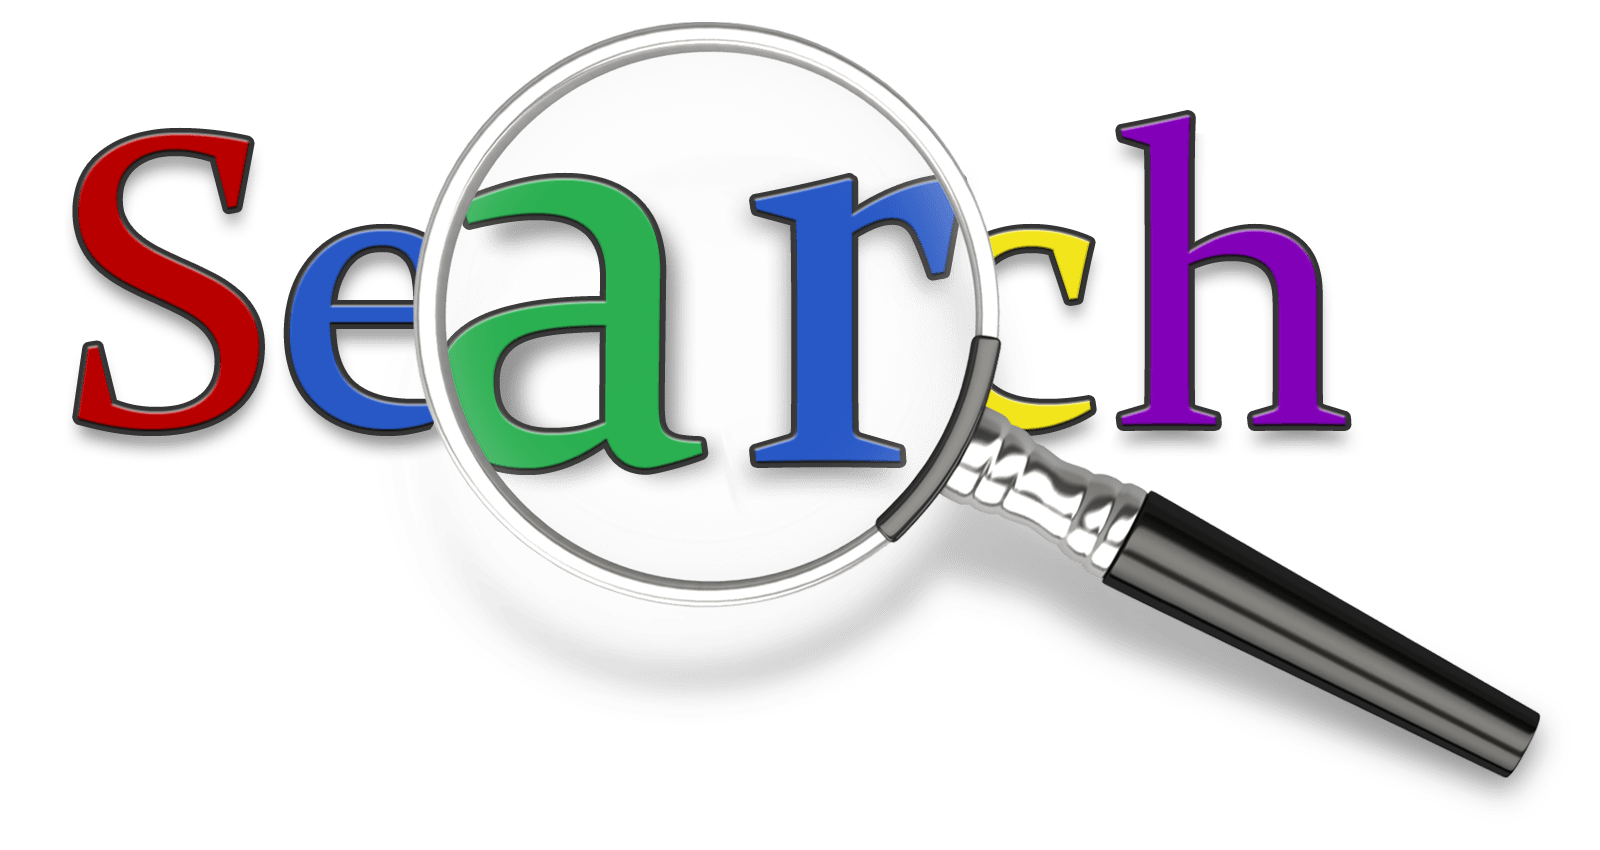 Using search engines to find what you are looking for